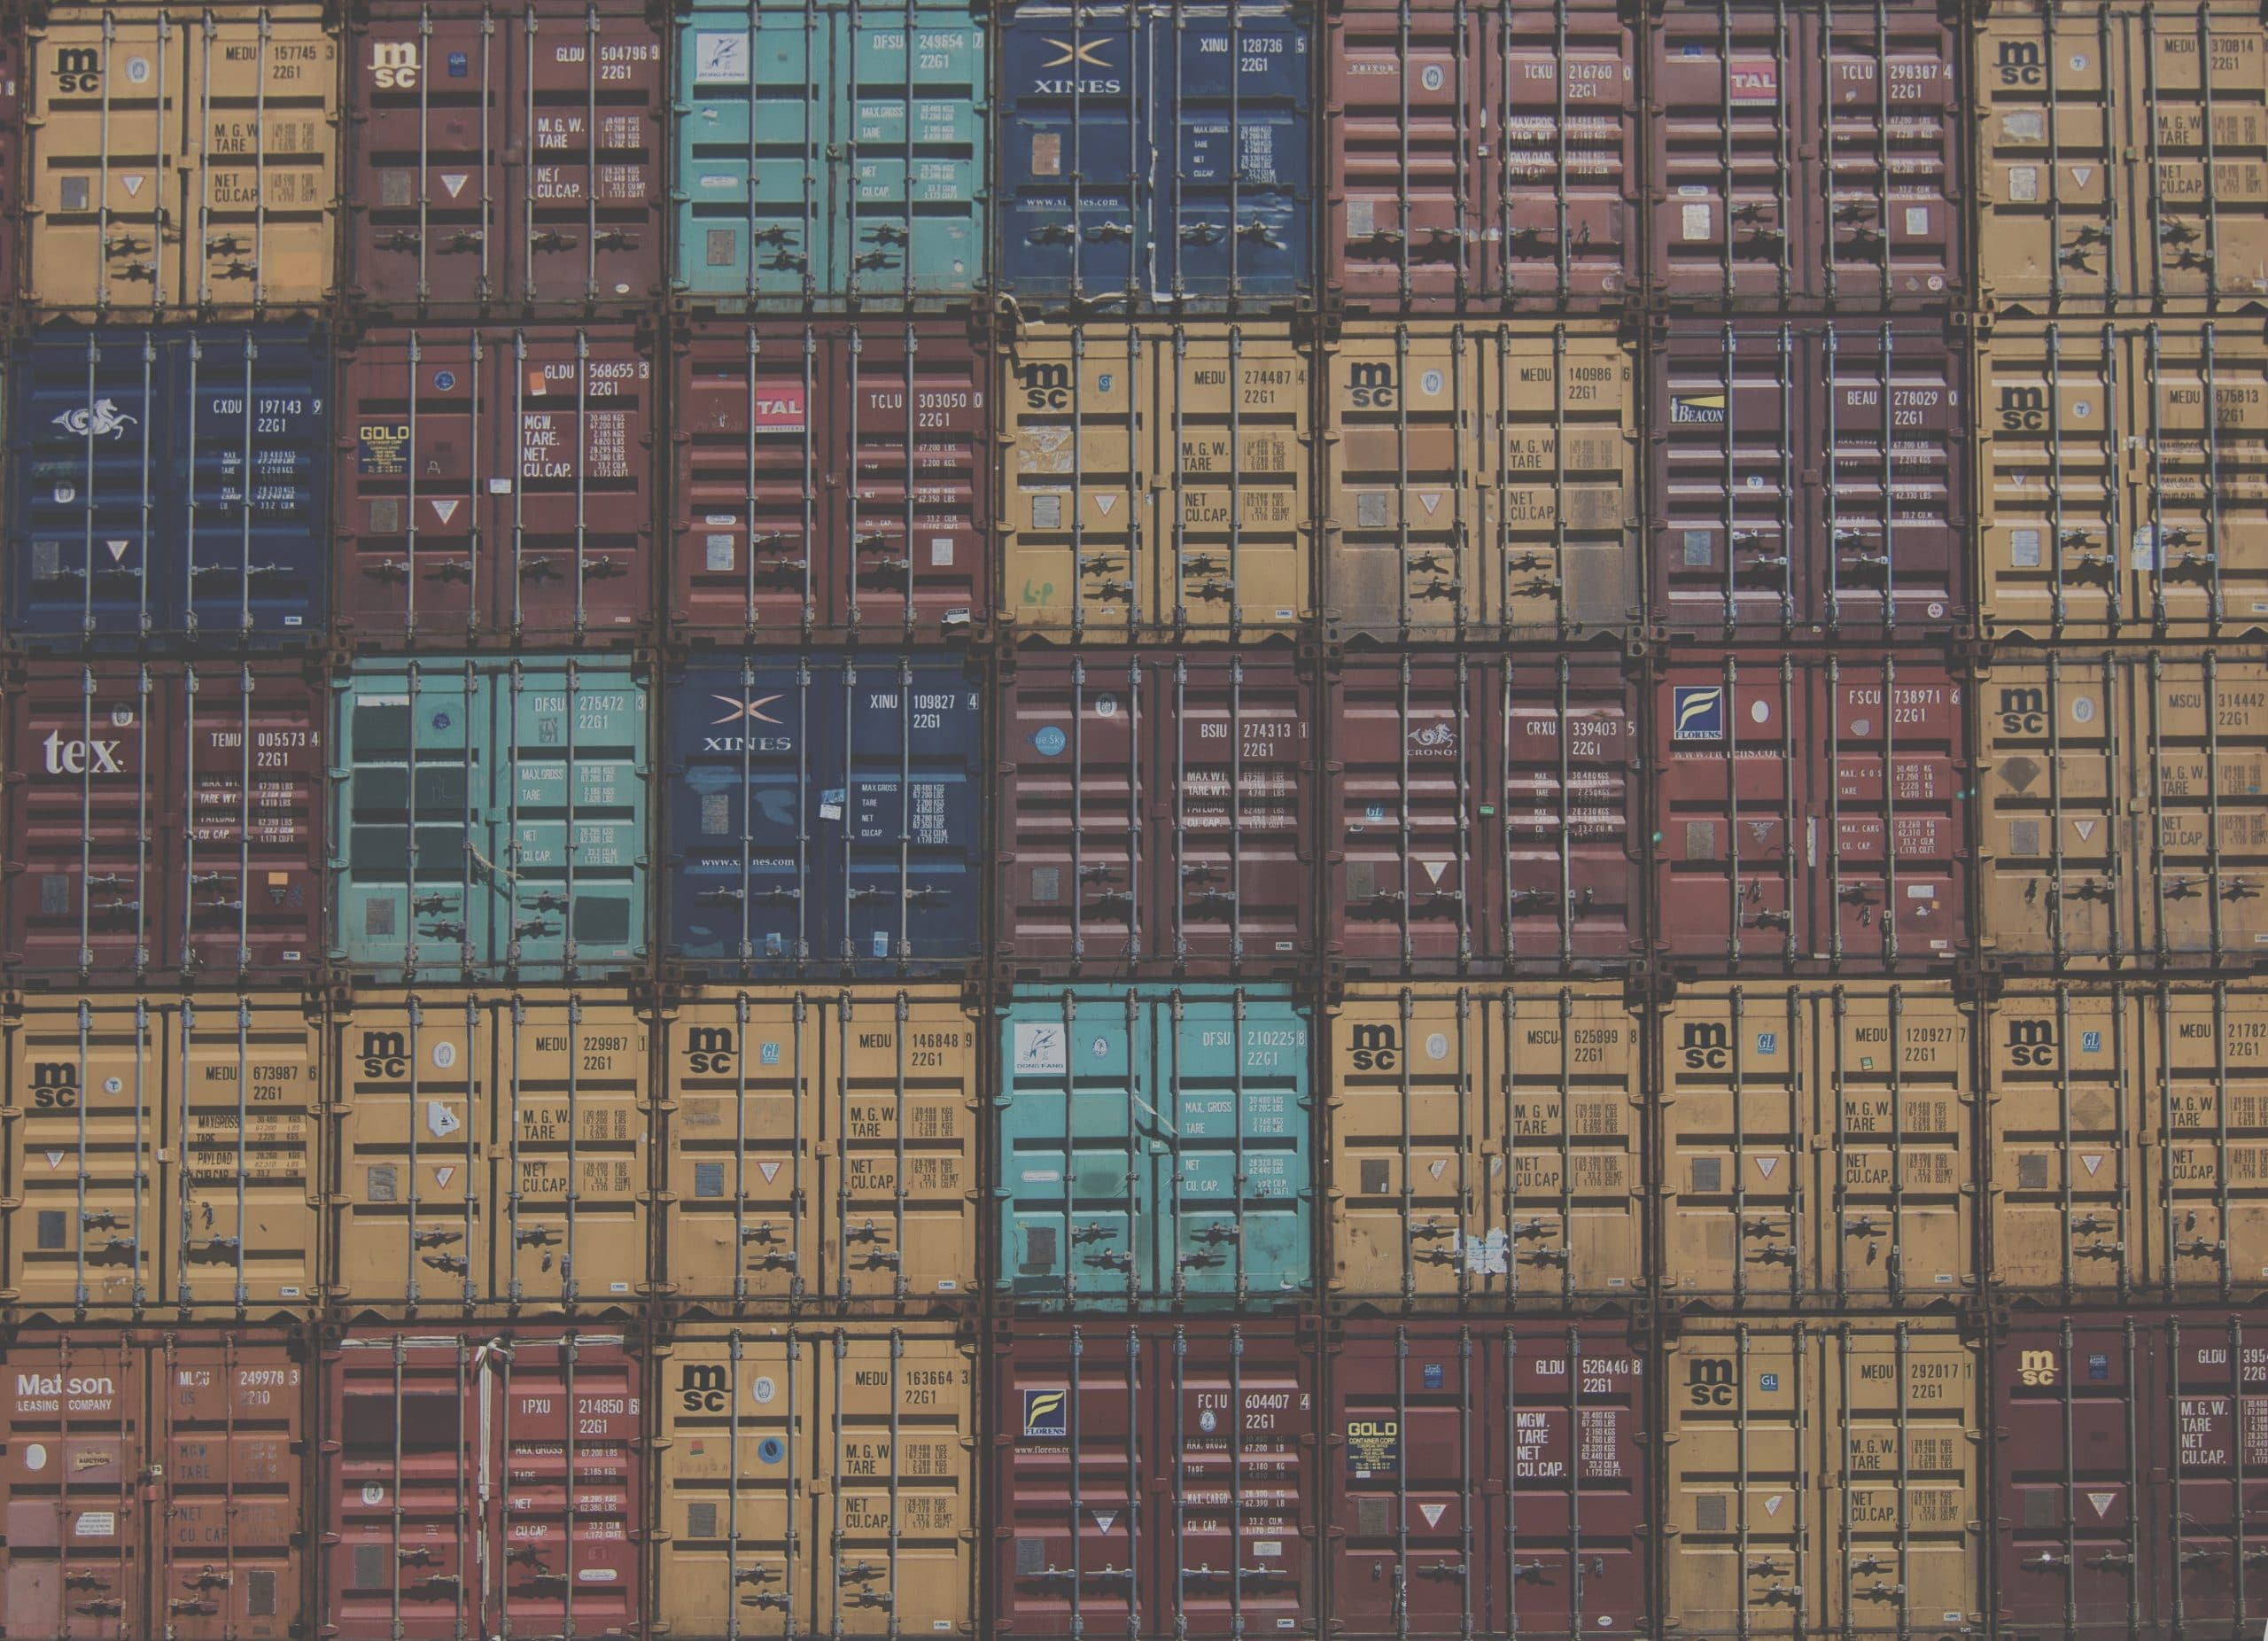 containers, but not kubernetes containers